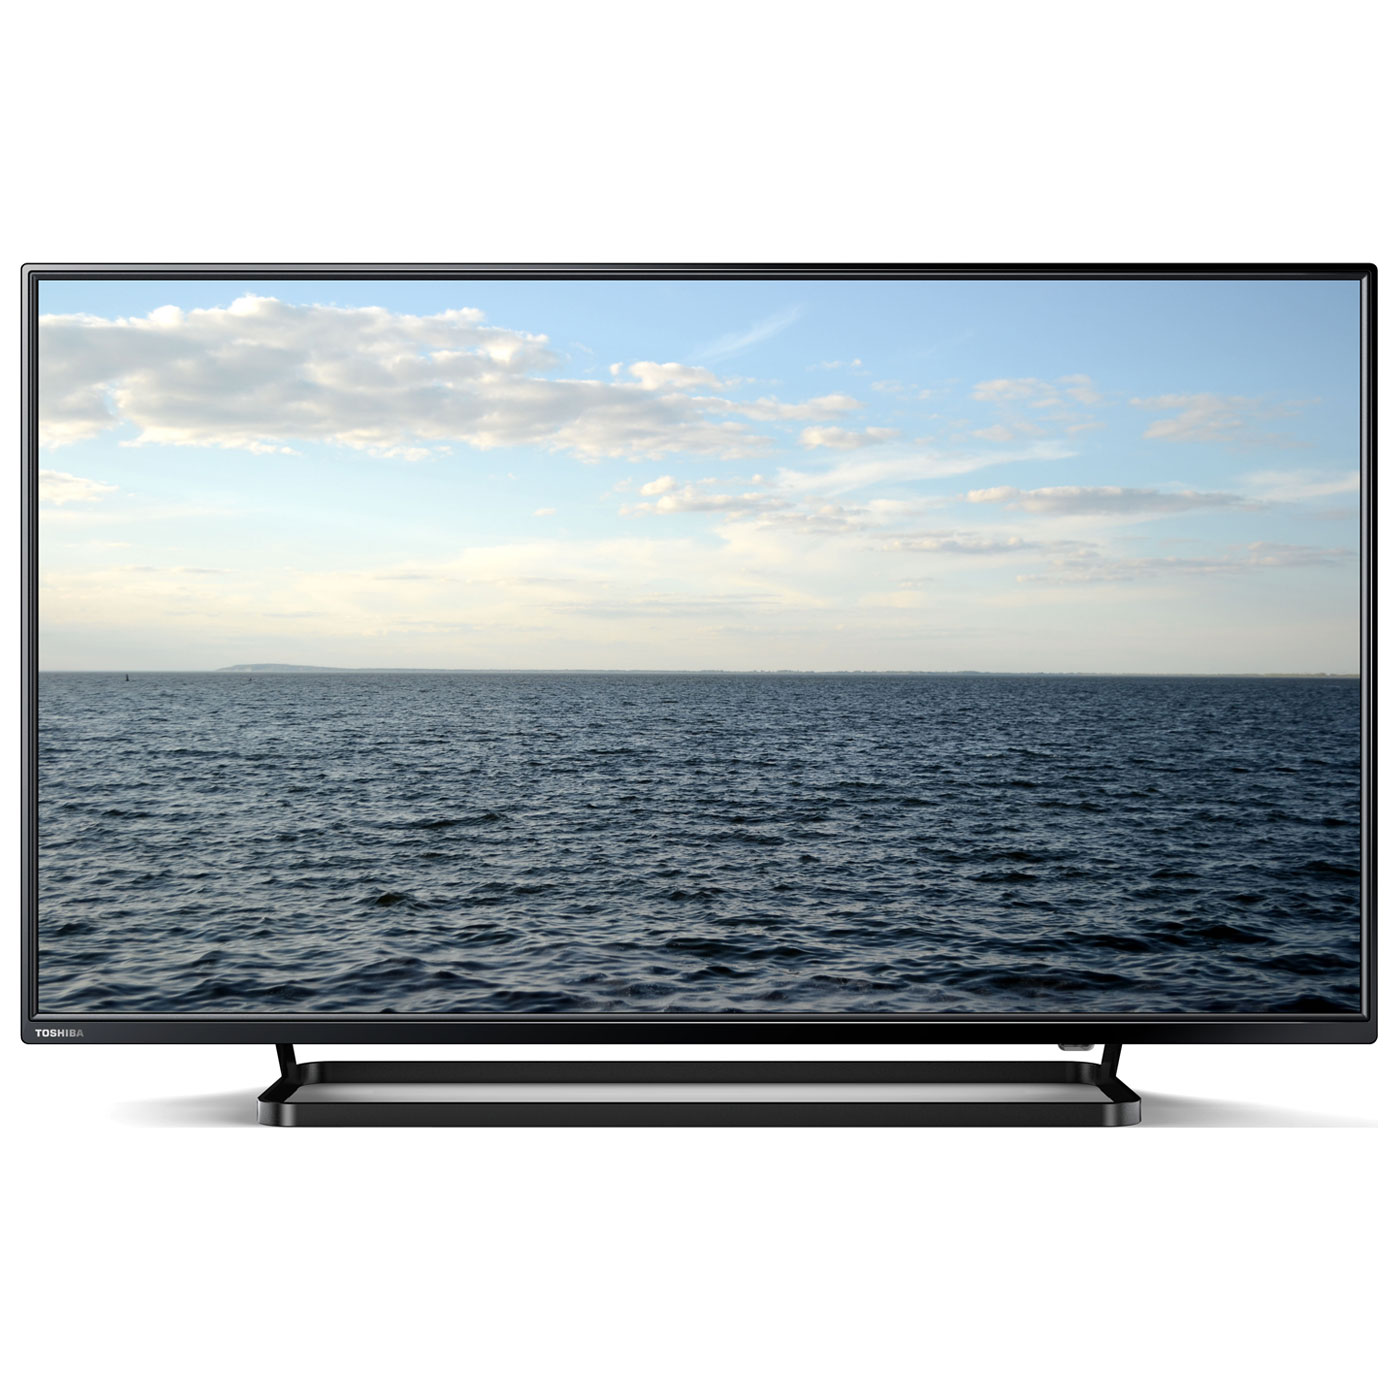 toshiba 40s1650ev tv toshiba sur. Black Bedroom Furniture Sets. Home Design Ideas